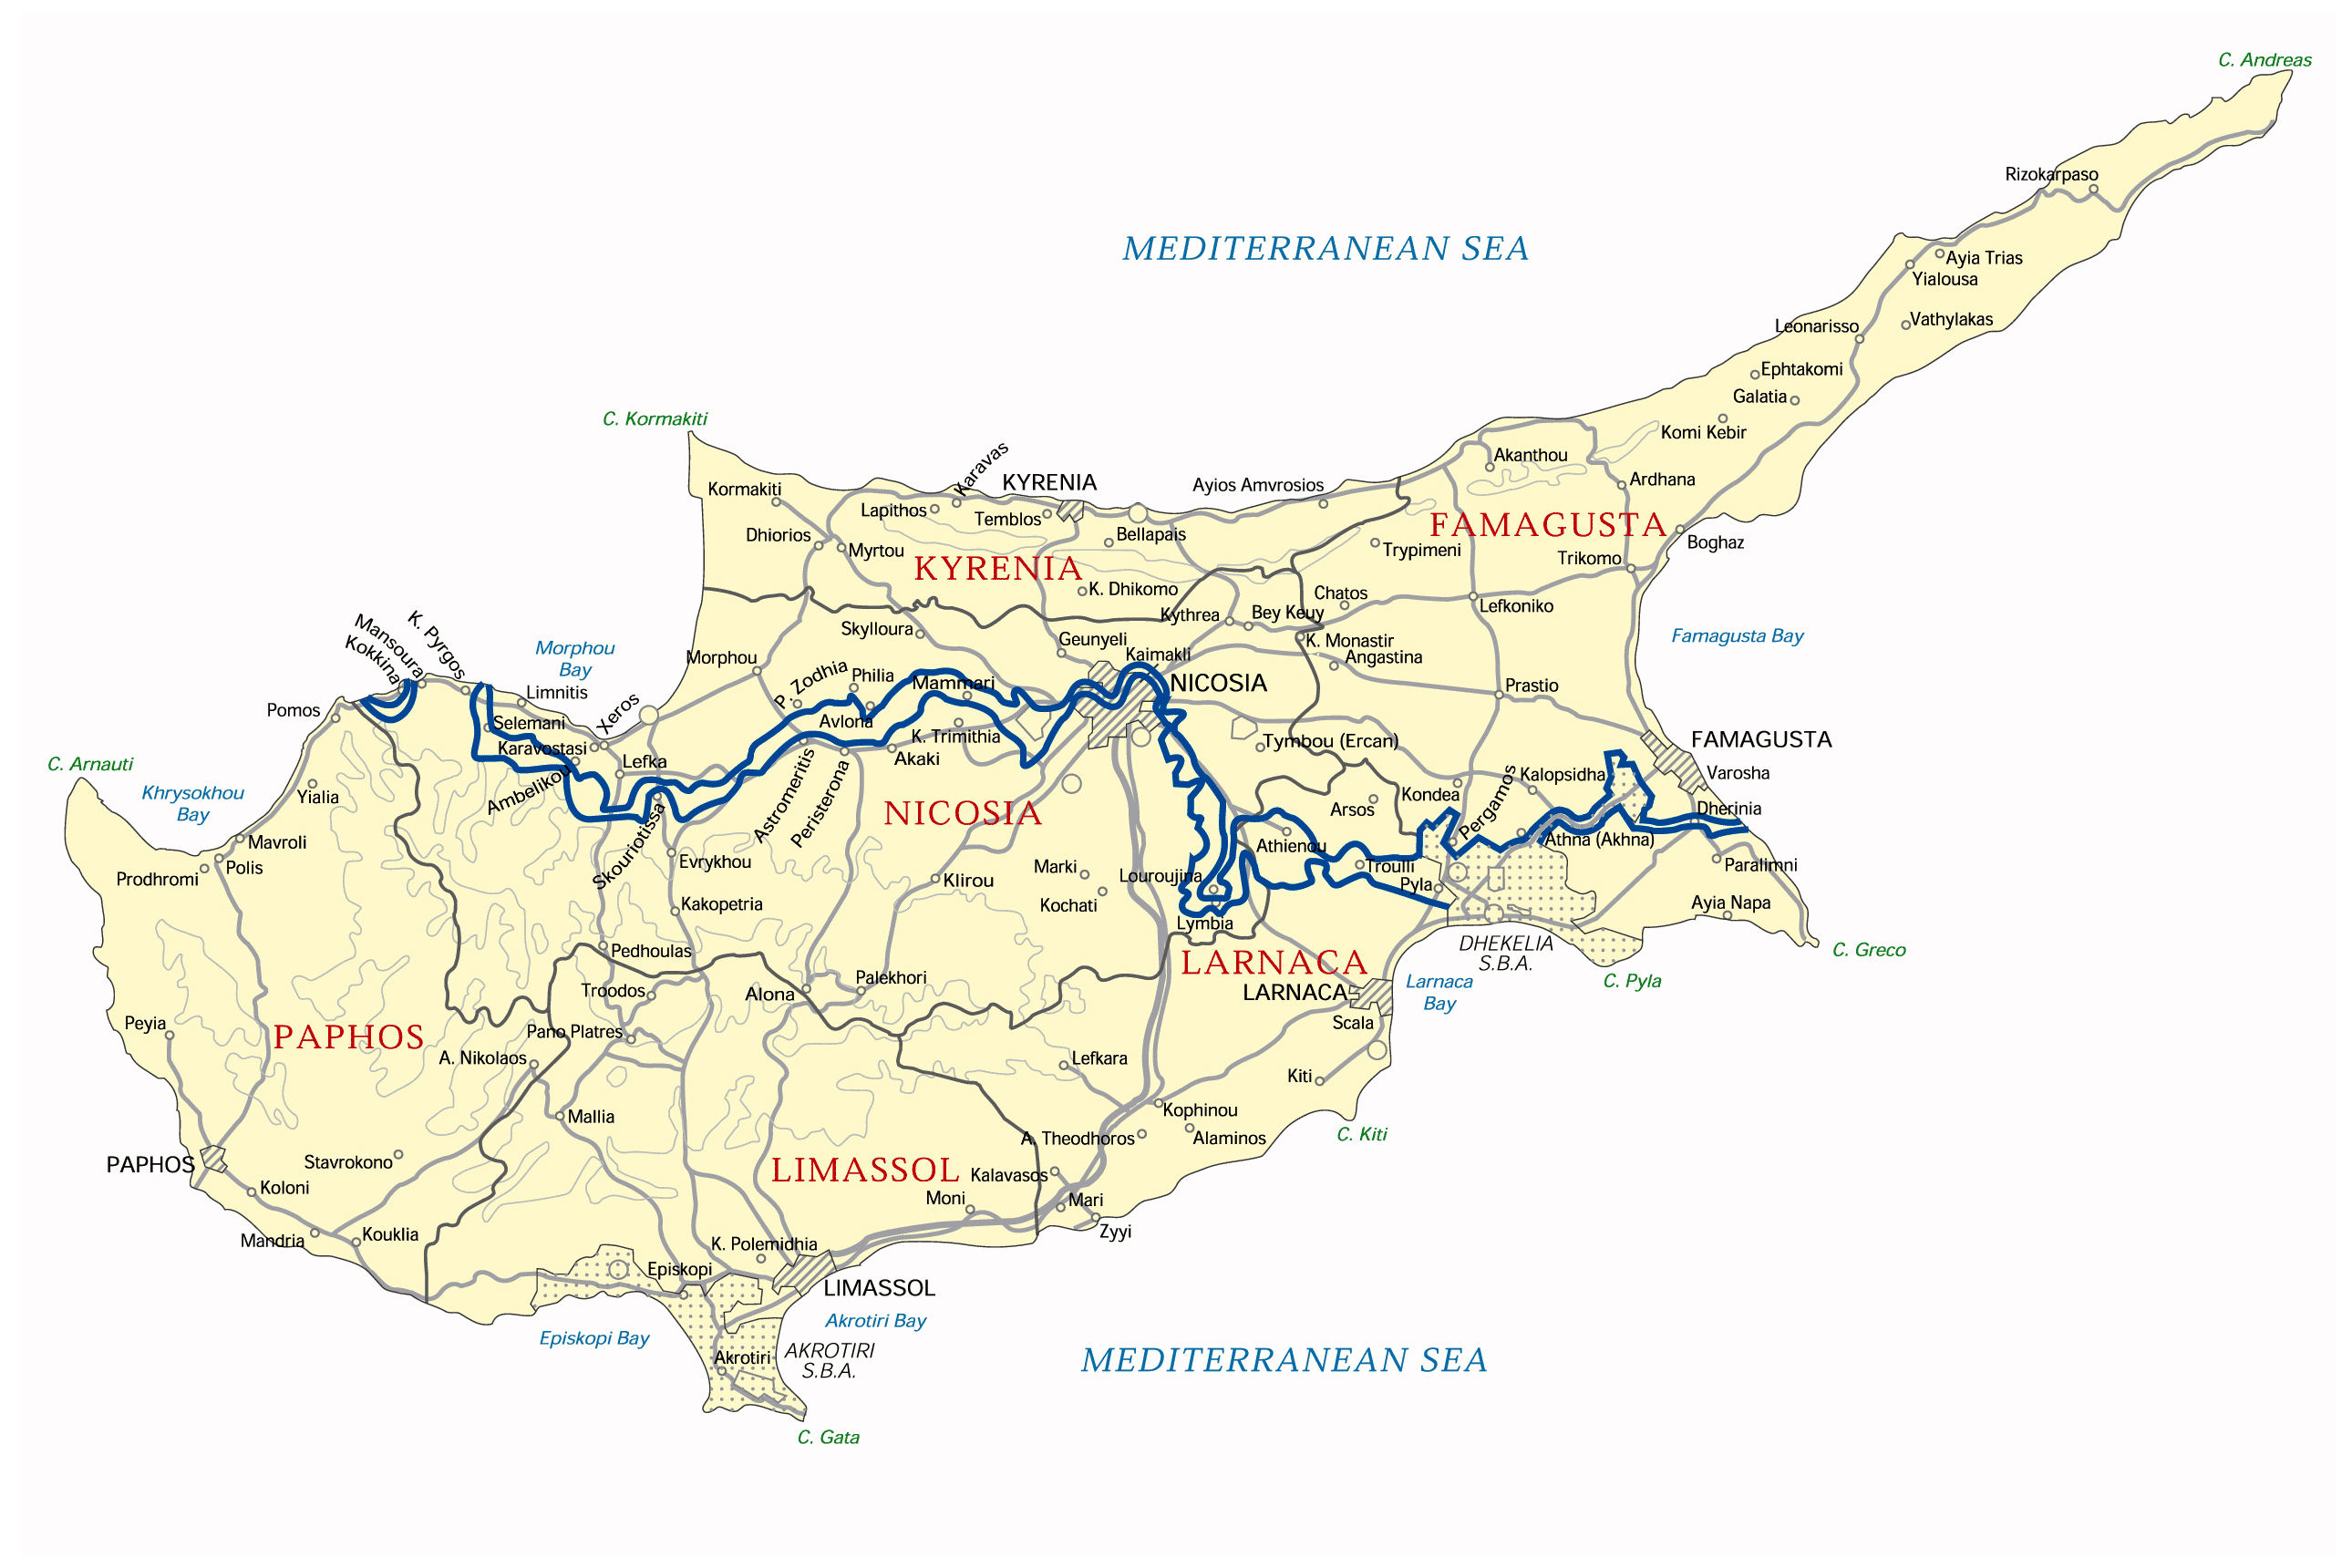 Maps of cyprus detailed map of cyprus in english tourist map of detailed administrative map of cyprus with roads and cities gumiabroncs Choice Image